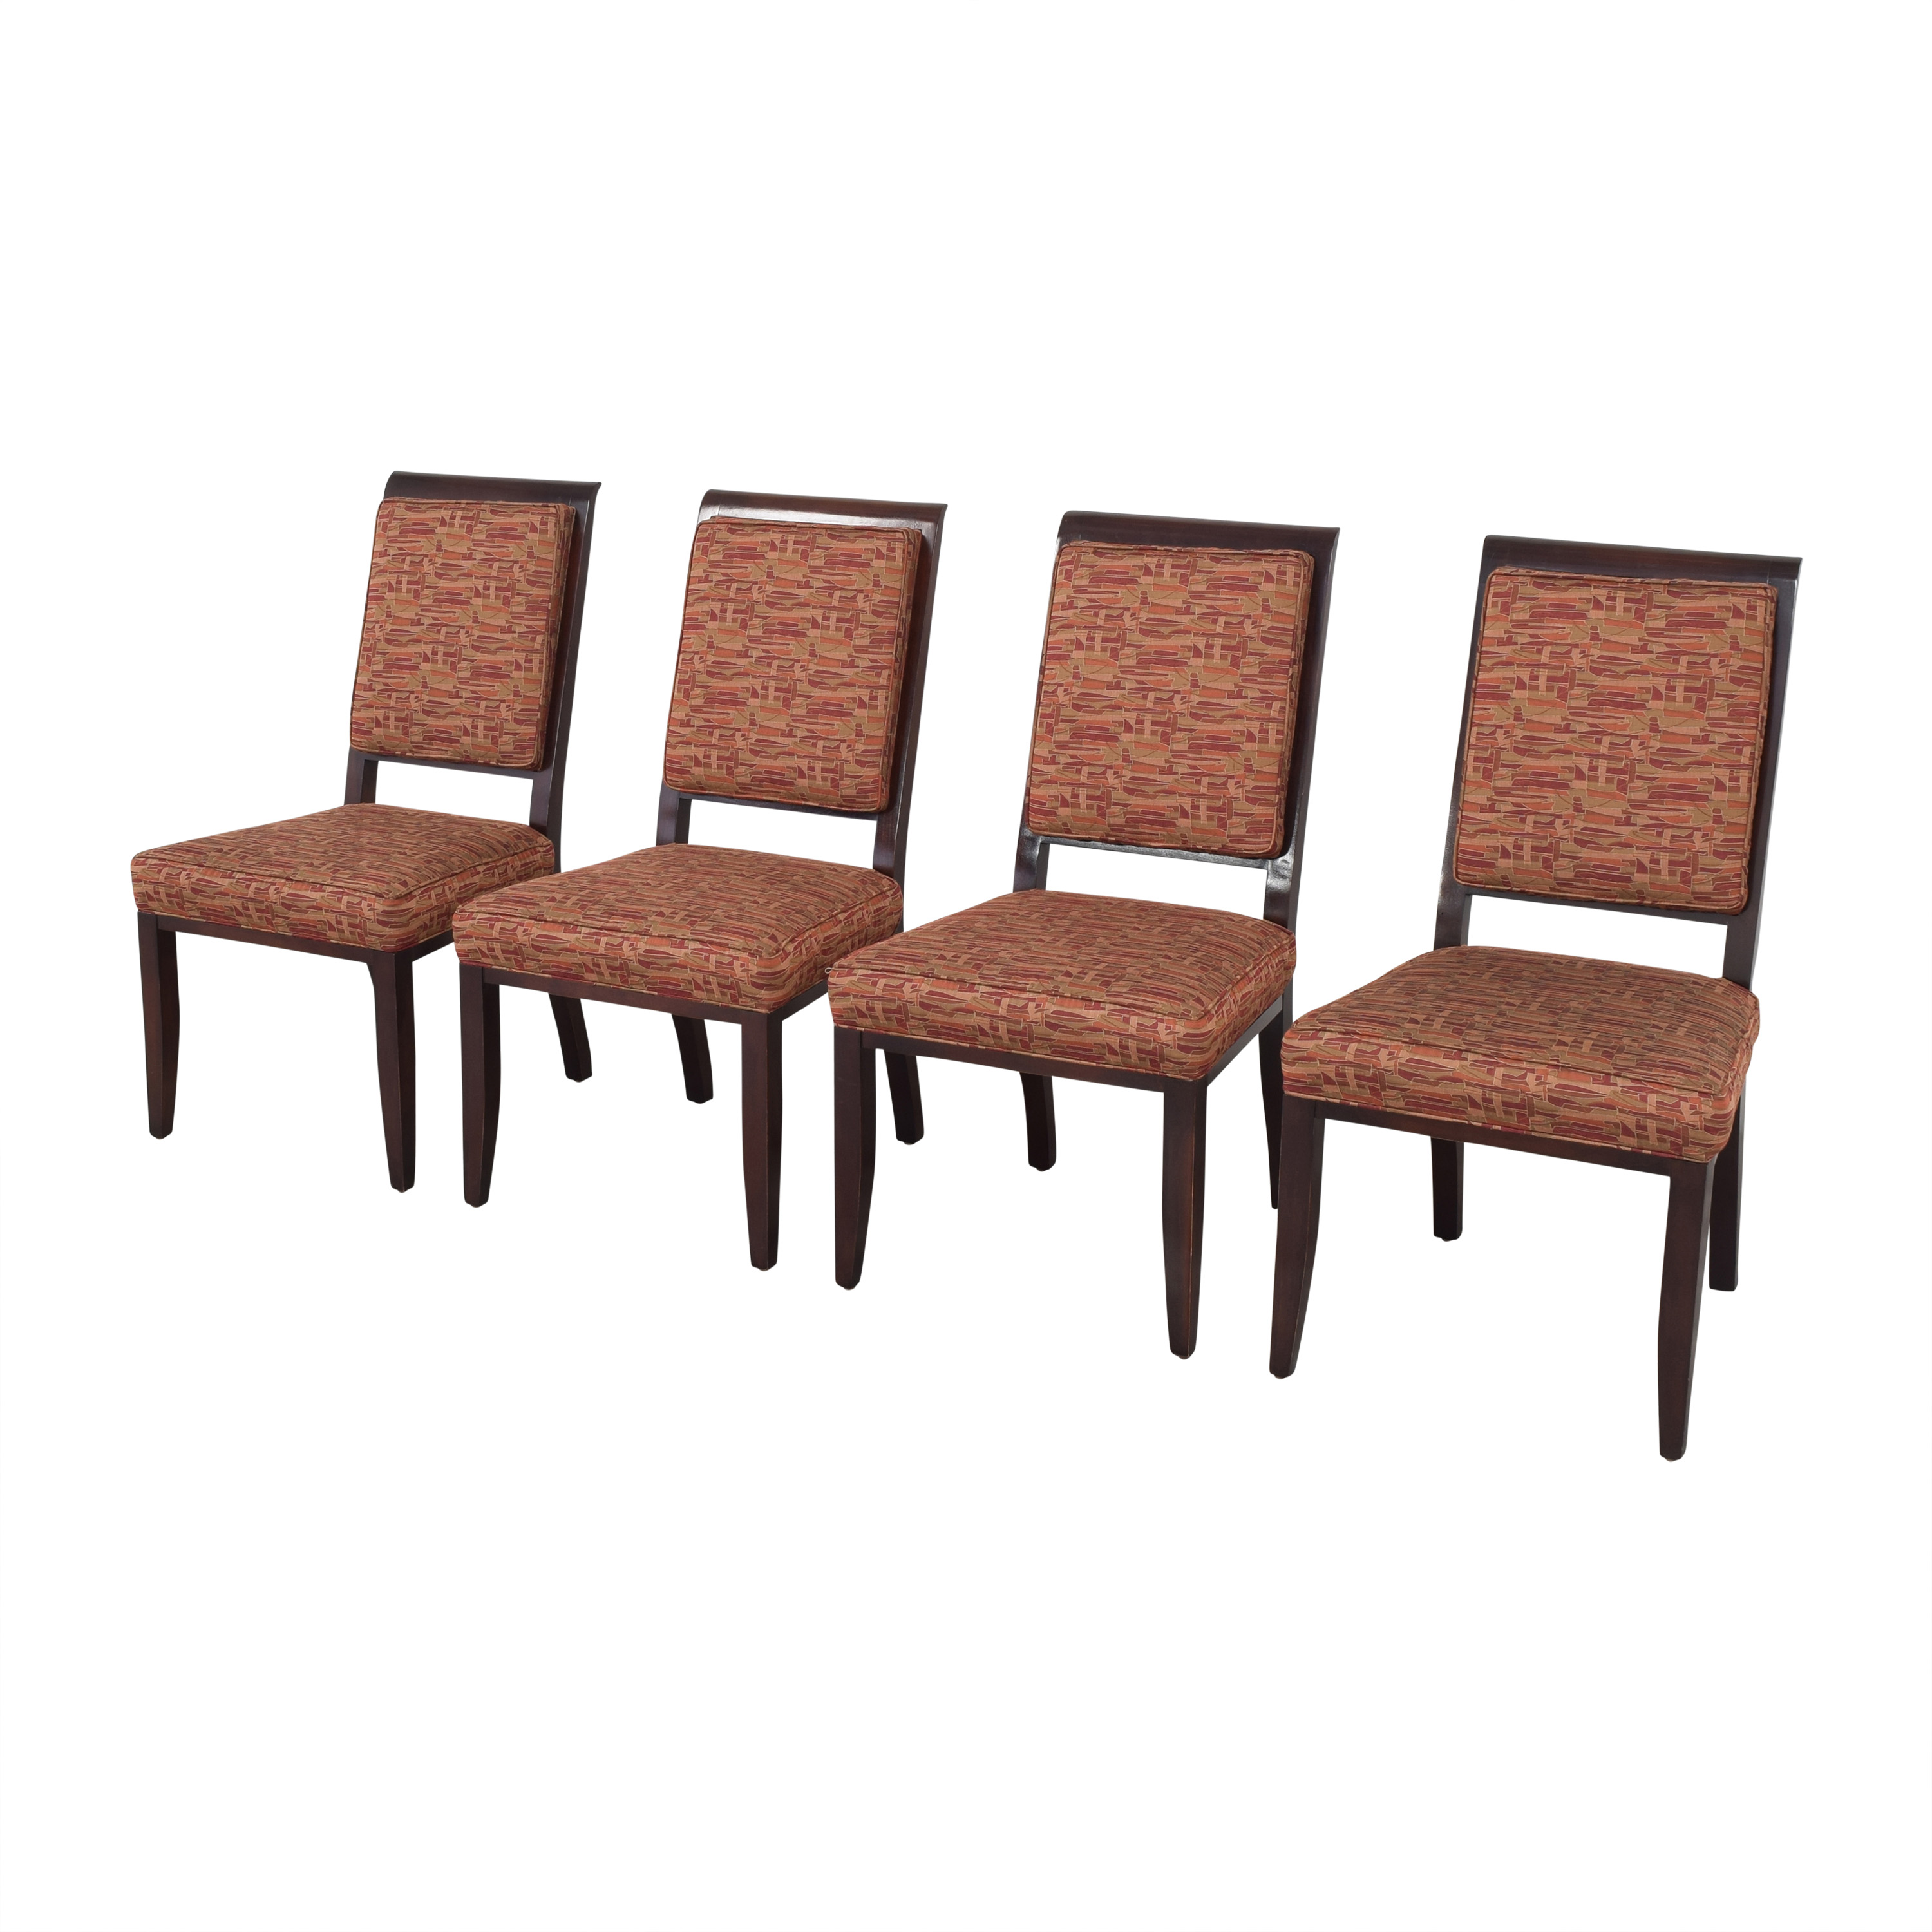 Henredon Furniture Upholstered Dining Chairs / Dining Chairs